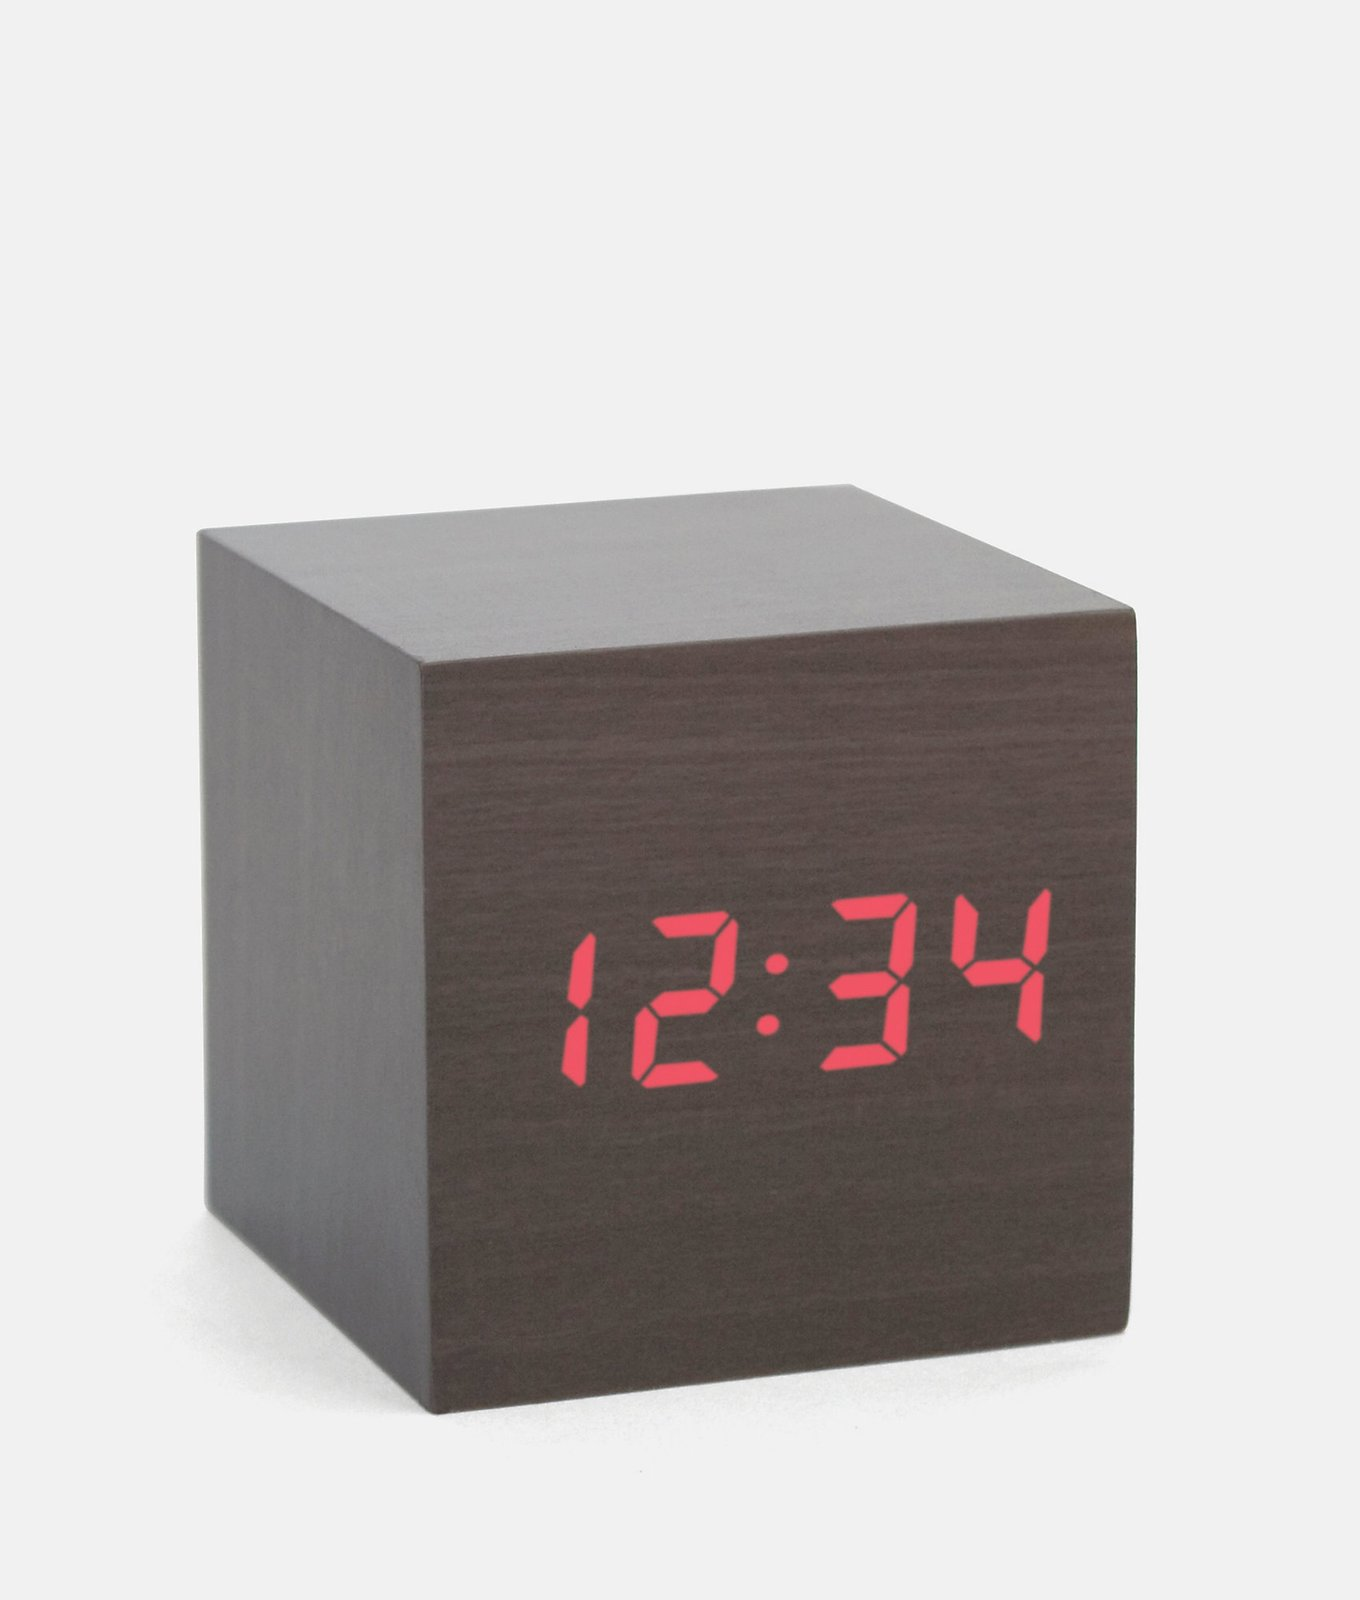 A minimalist LED clock activated by the clap of your hands. Jack Spade Cube Alarm Clock, $30